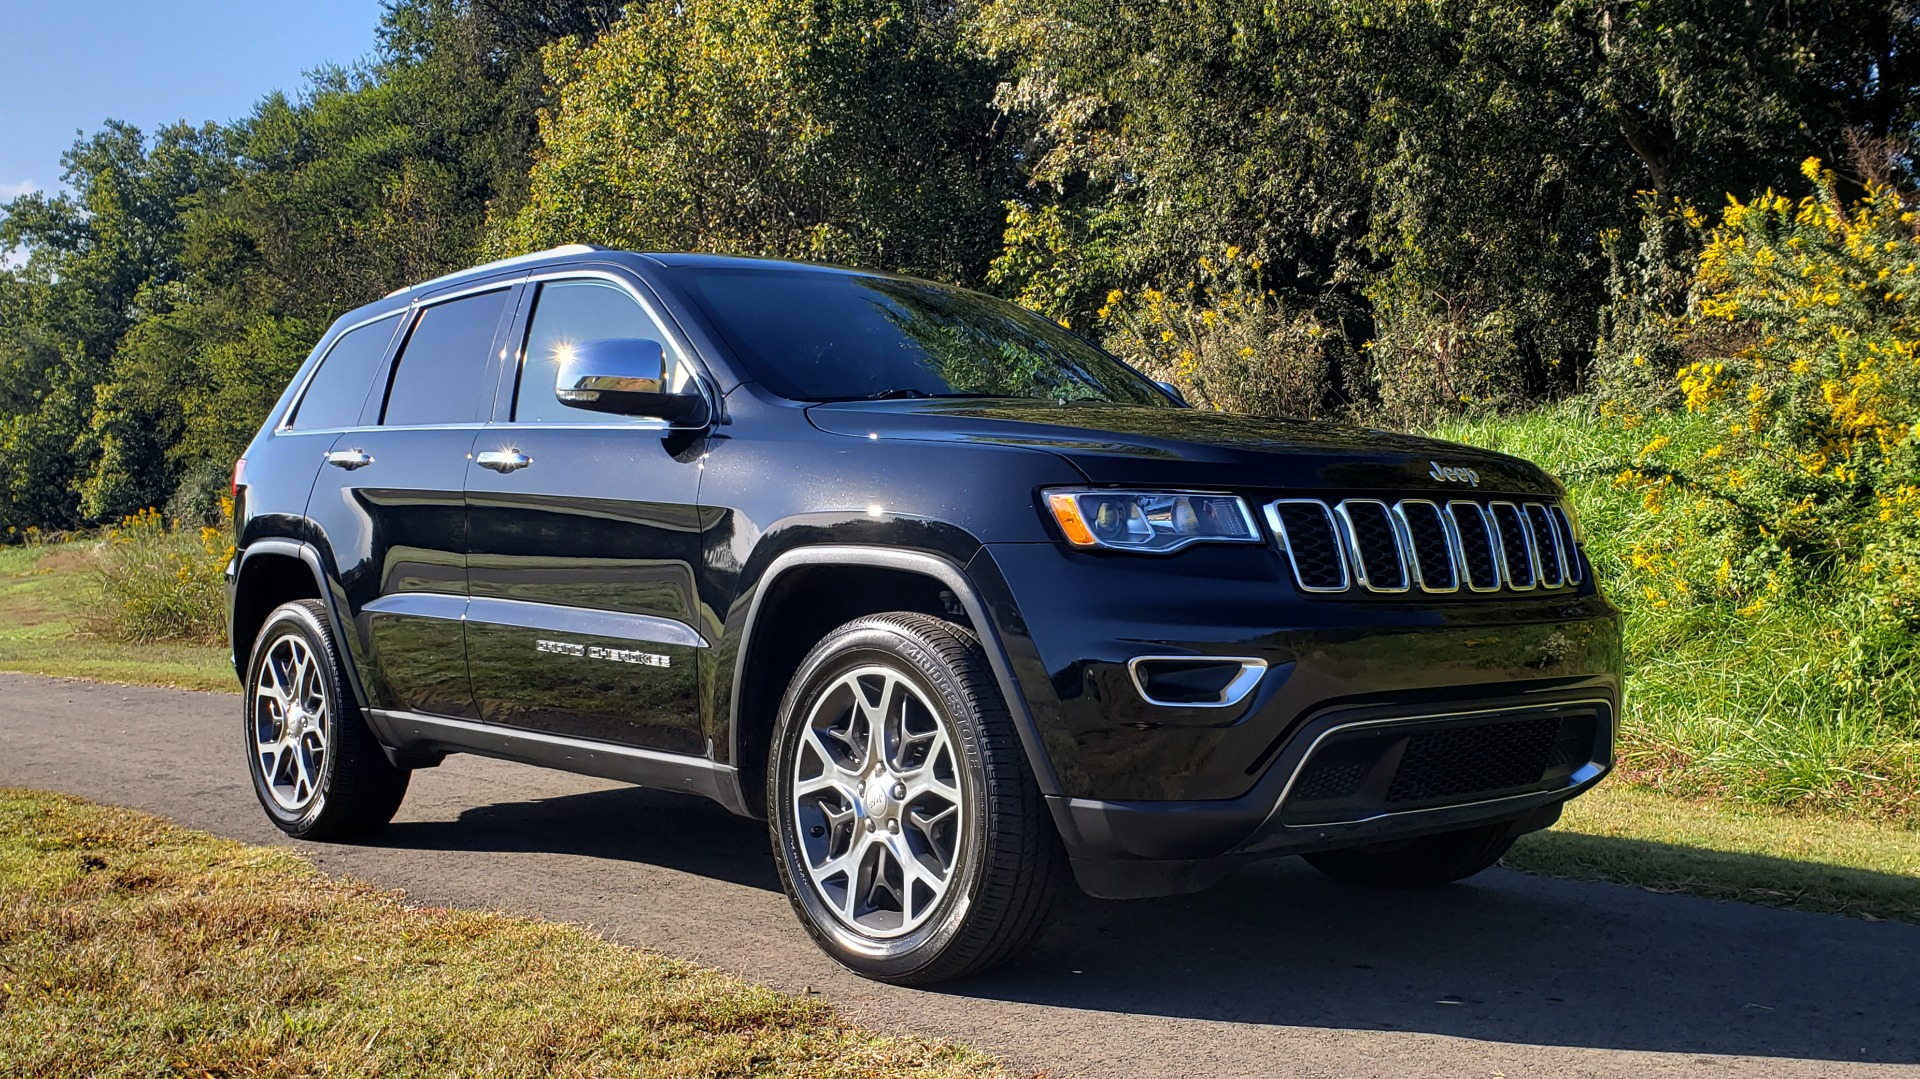 Used 2019 Jeep GRAND CHEROKEE LIMITED 4X4 / NAV / SUNROOF / BLIND SPOT MONITOR / REARVIEW for sale Sold at Formula Imports in Charlotte NC 28227 3